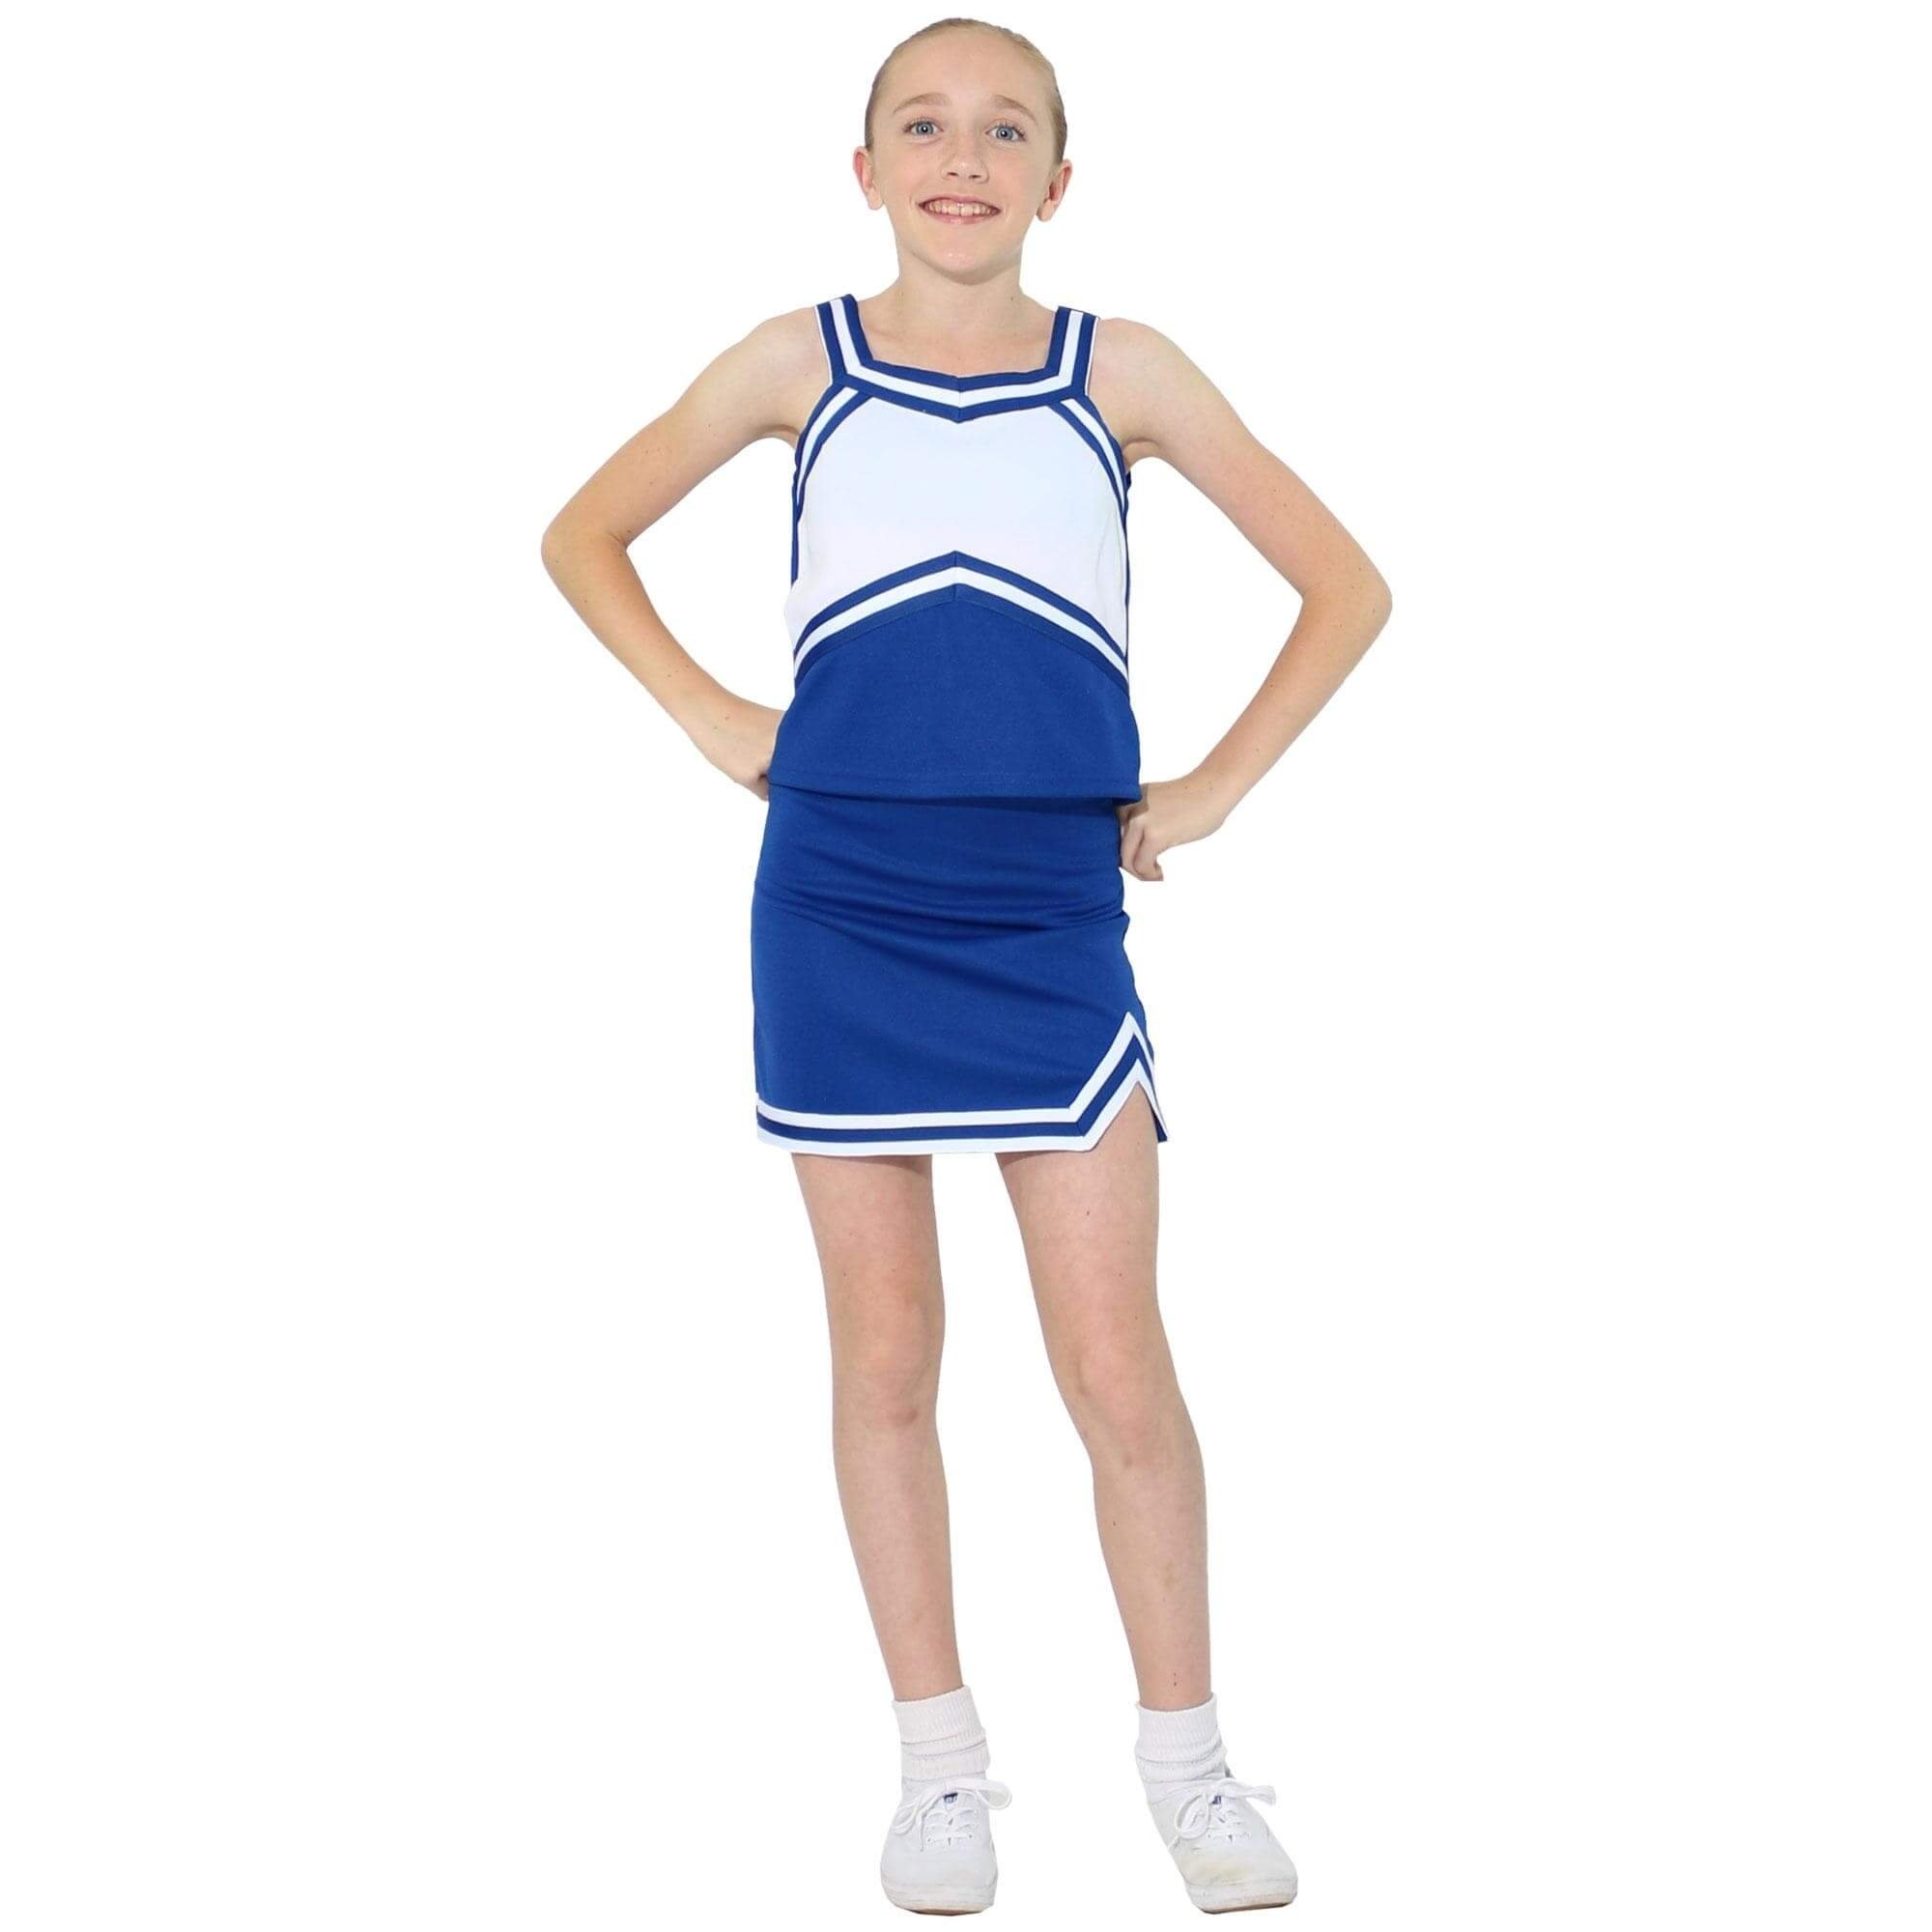 Danzcue Child Sweetheart Cheerleaders Uniform Set